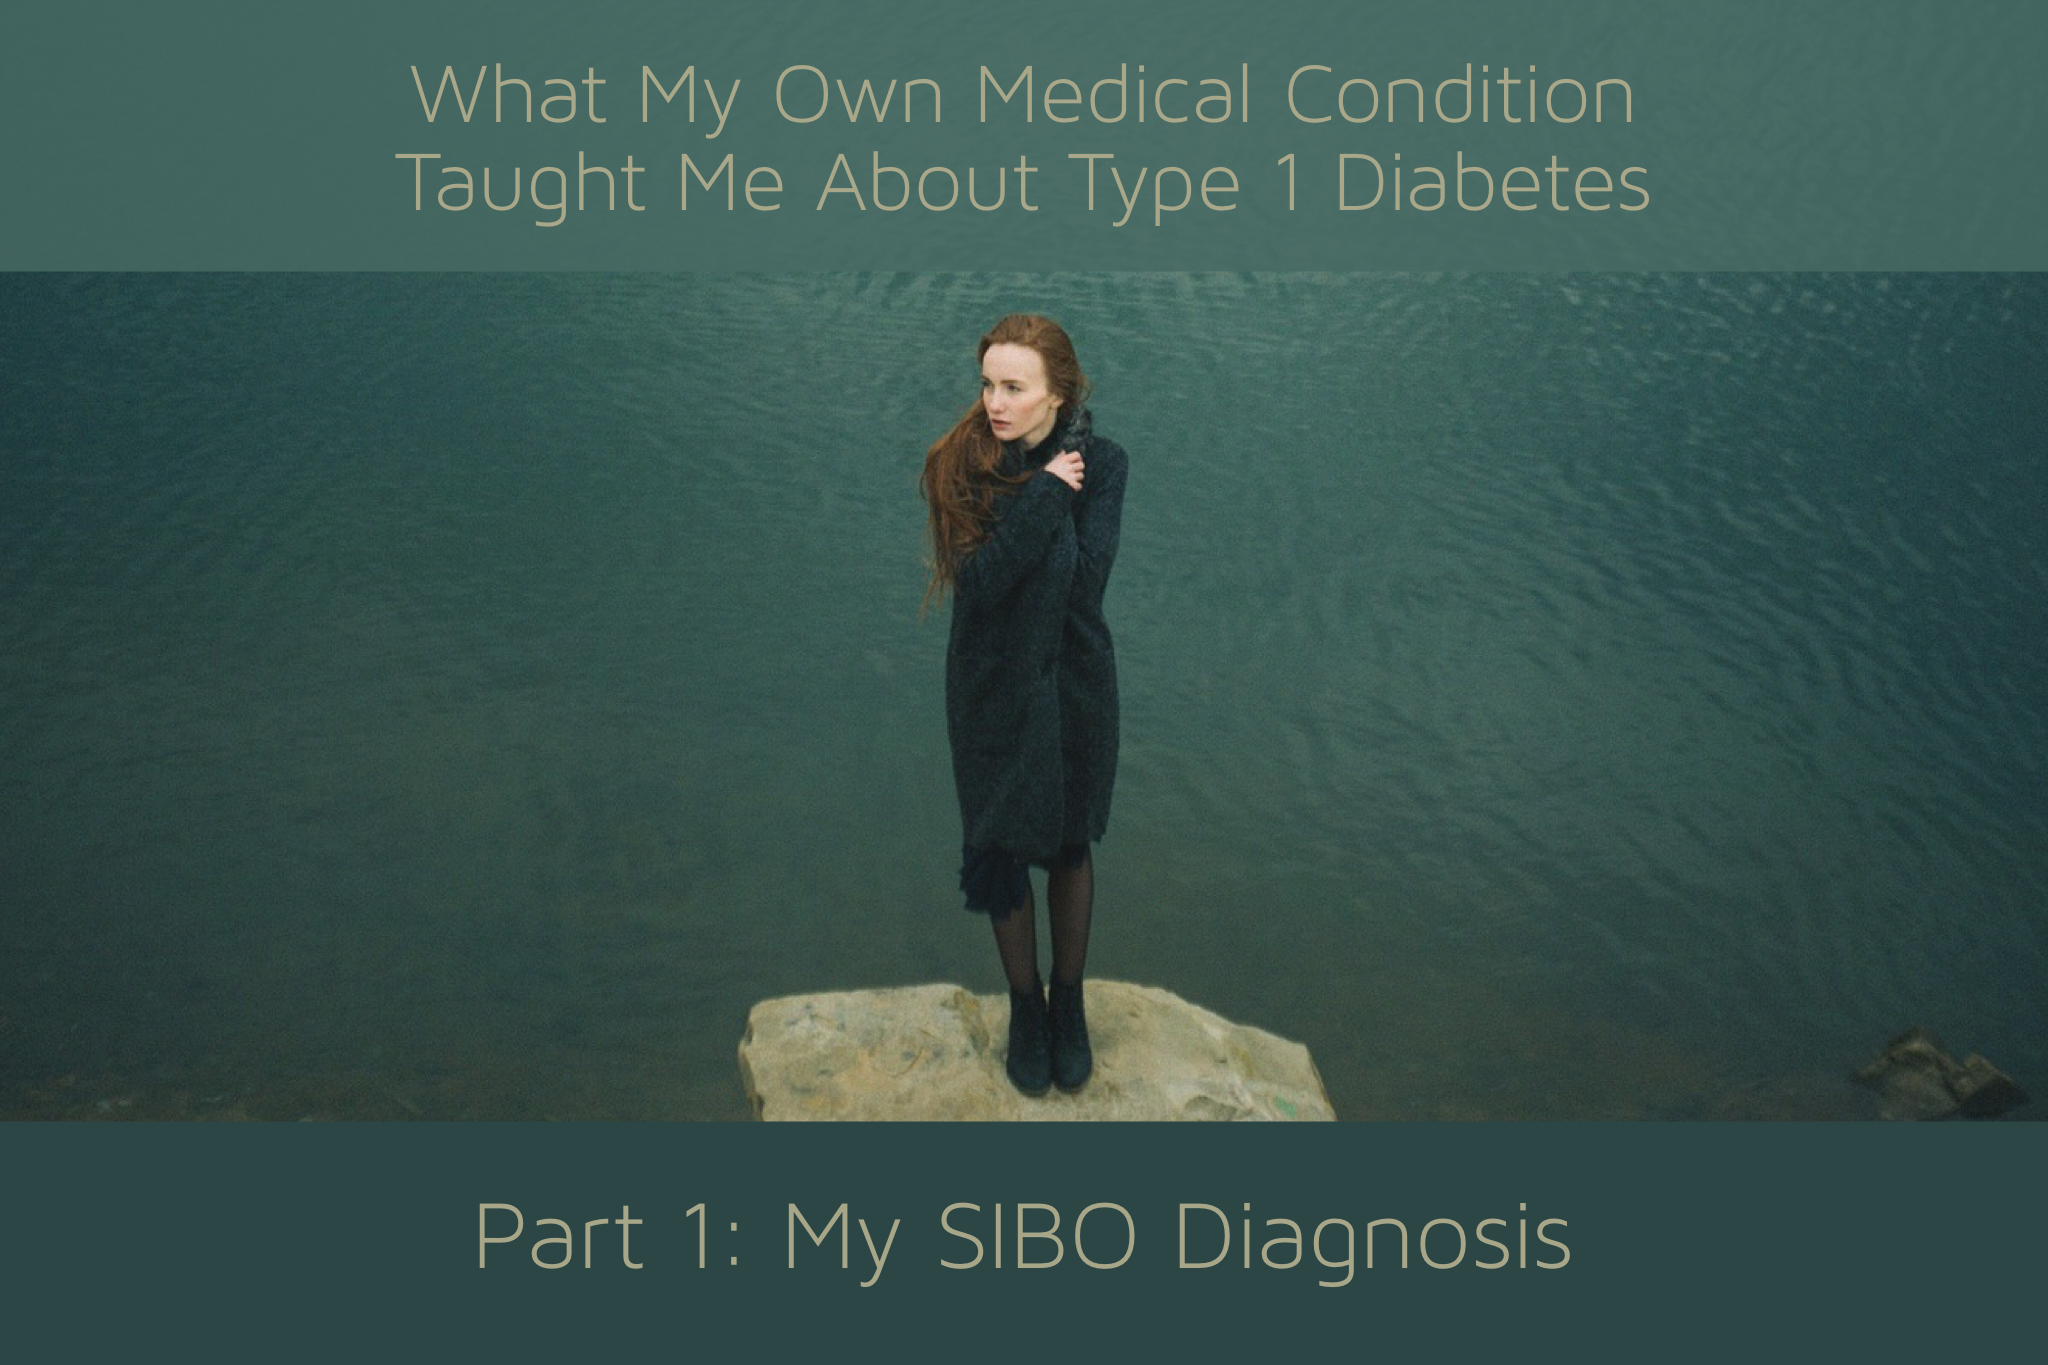 SIBO Diagnosis